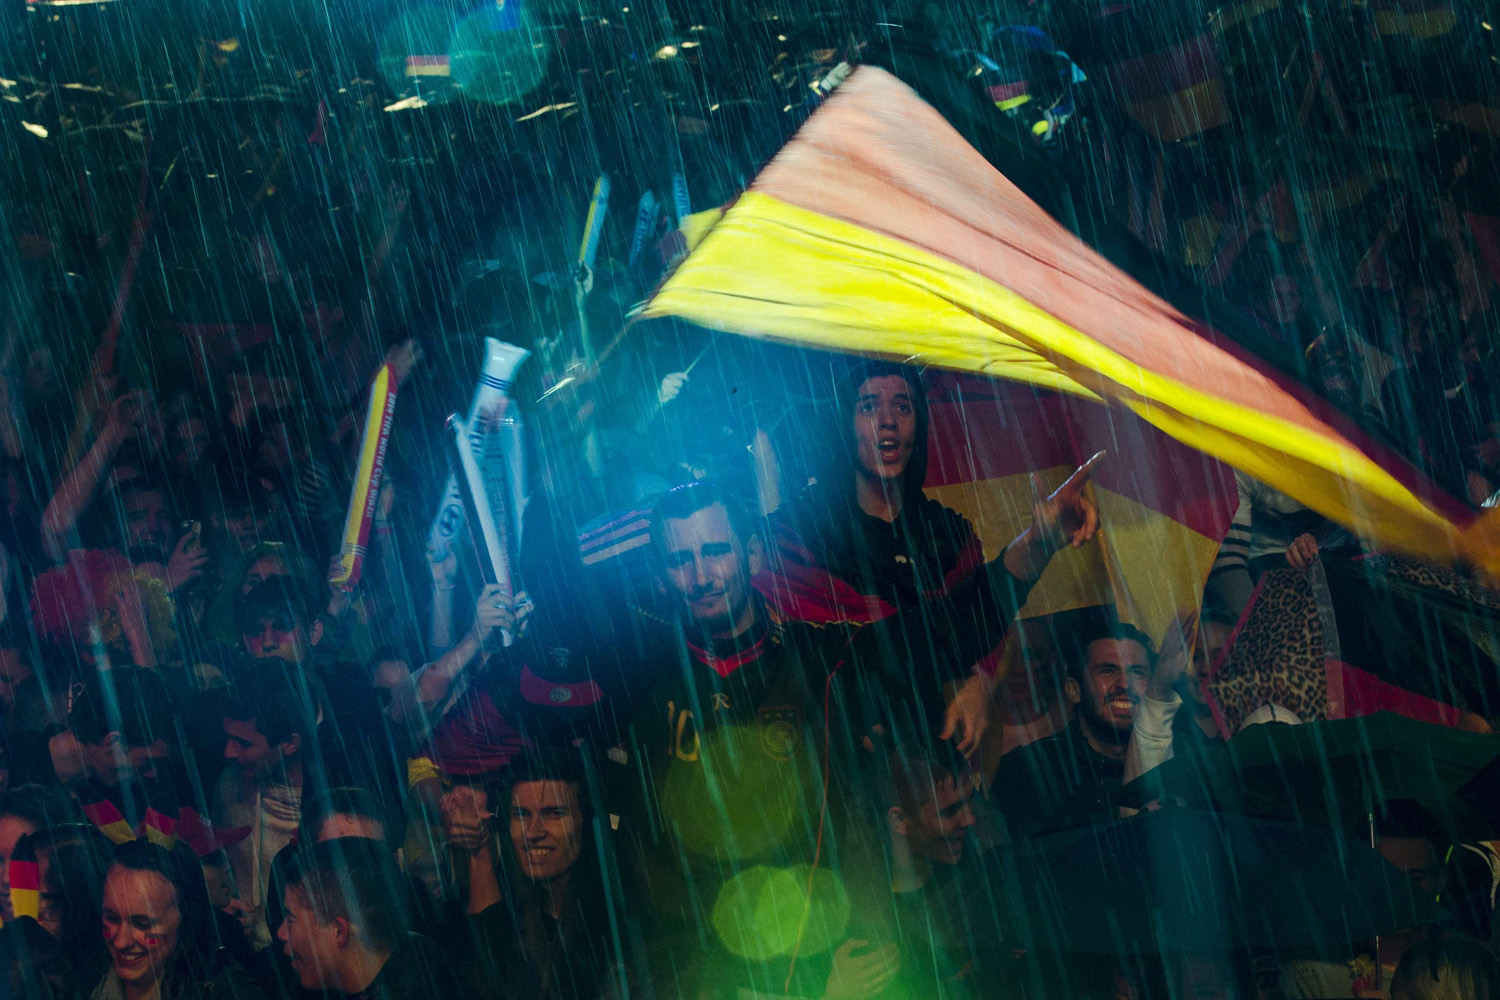 Jun. 30, 2014. People wave German flags as they watch Germany play against Algeria during their 2014 World Cup round of 16 game, during heavy rain at the Fanmeile public viewing arena in Berlin.